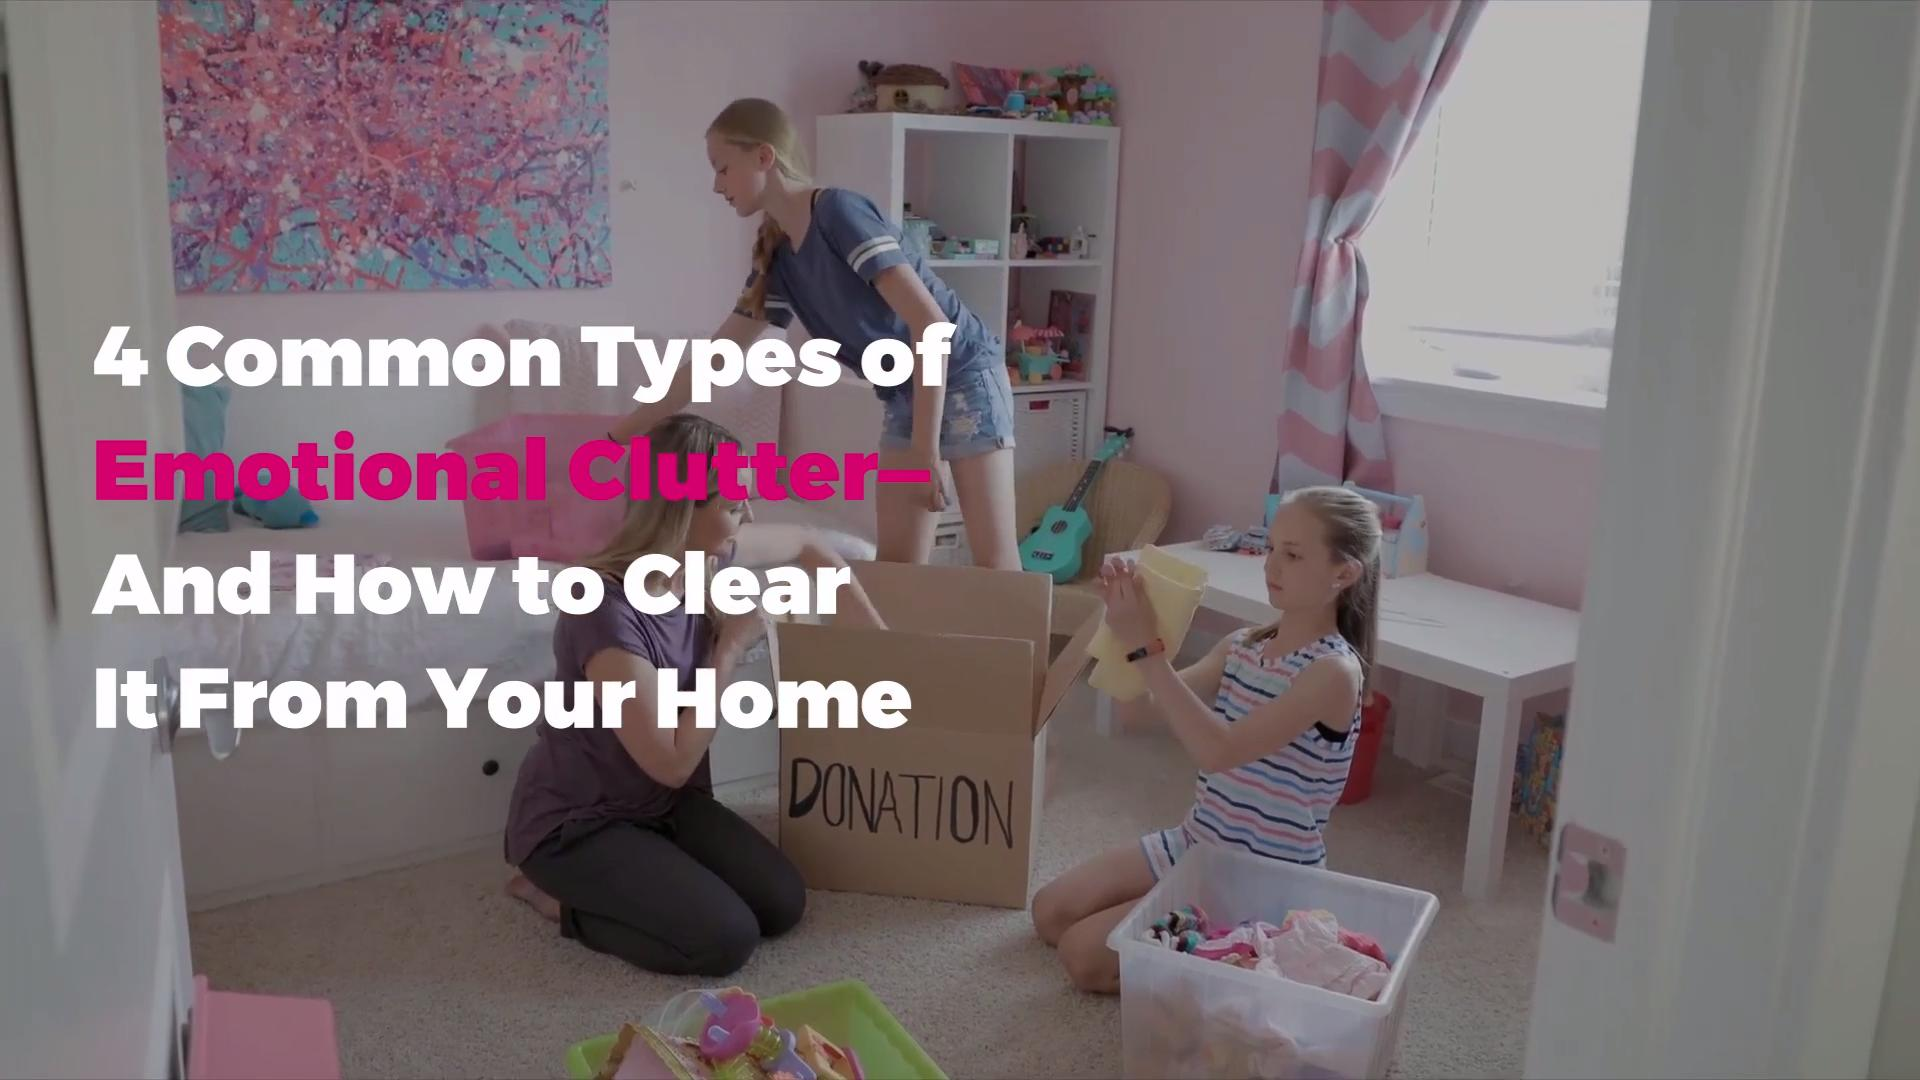 4 Common Types of Emotional Clutter—And How to Clear It From Your Home